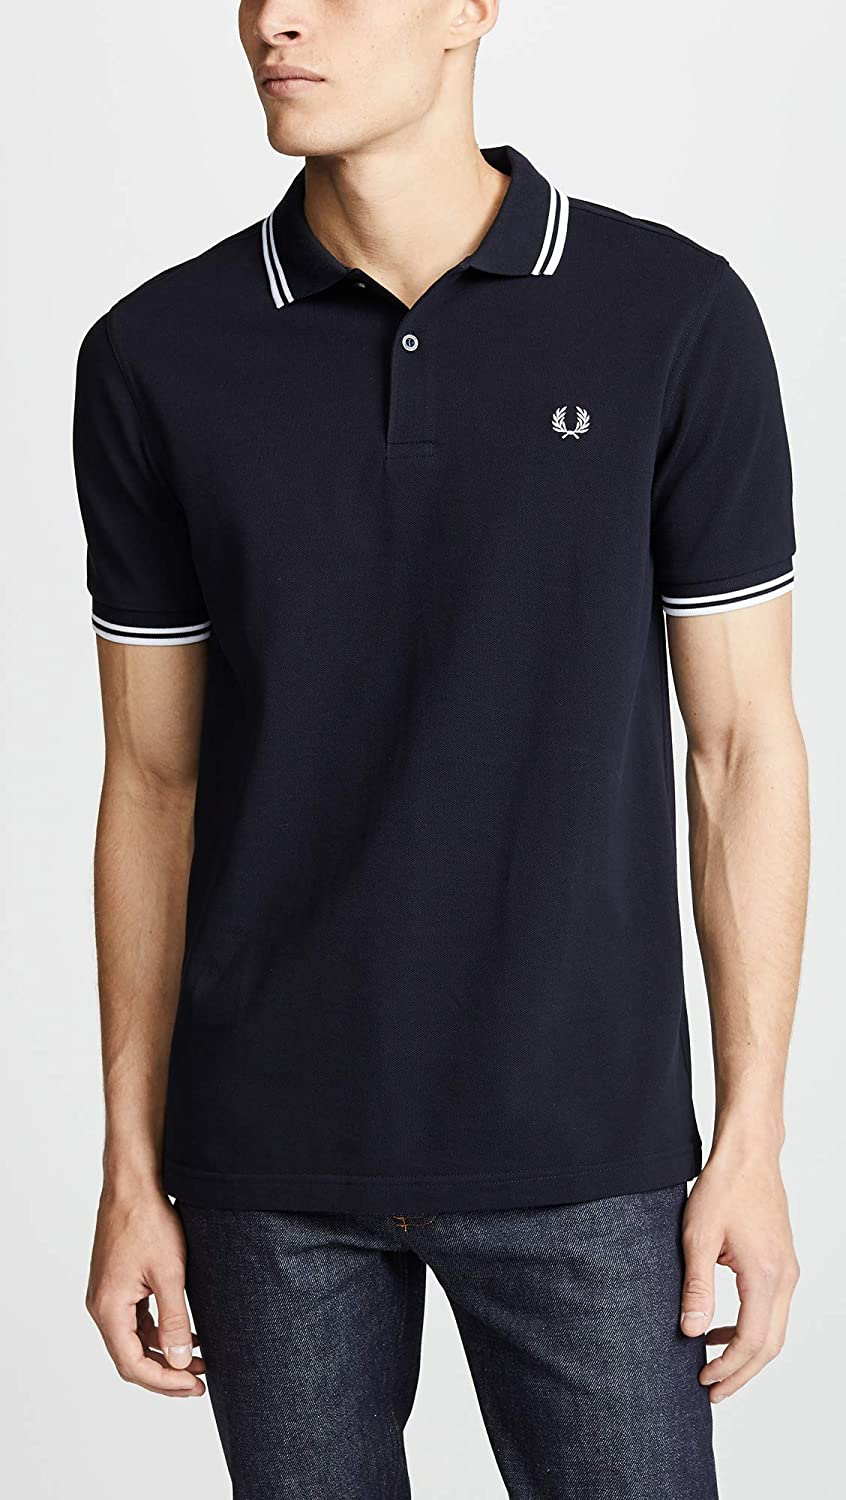 2dce5e5060bf42 Amazon.com  Fred Perry Men s Twin Tipped Polo Shirt  Clothing